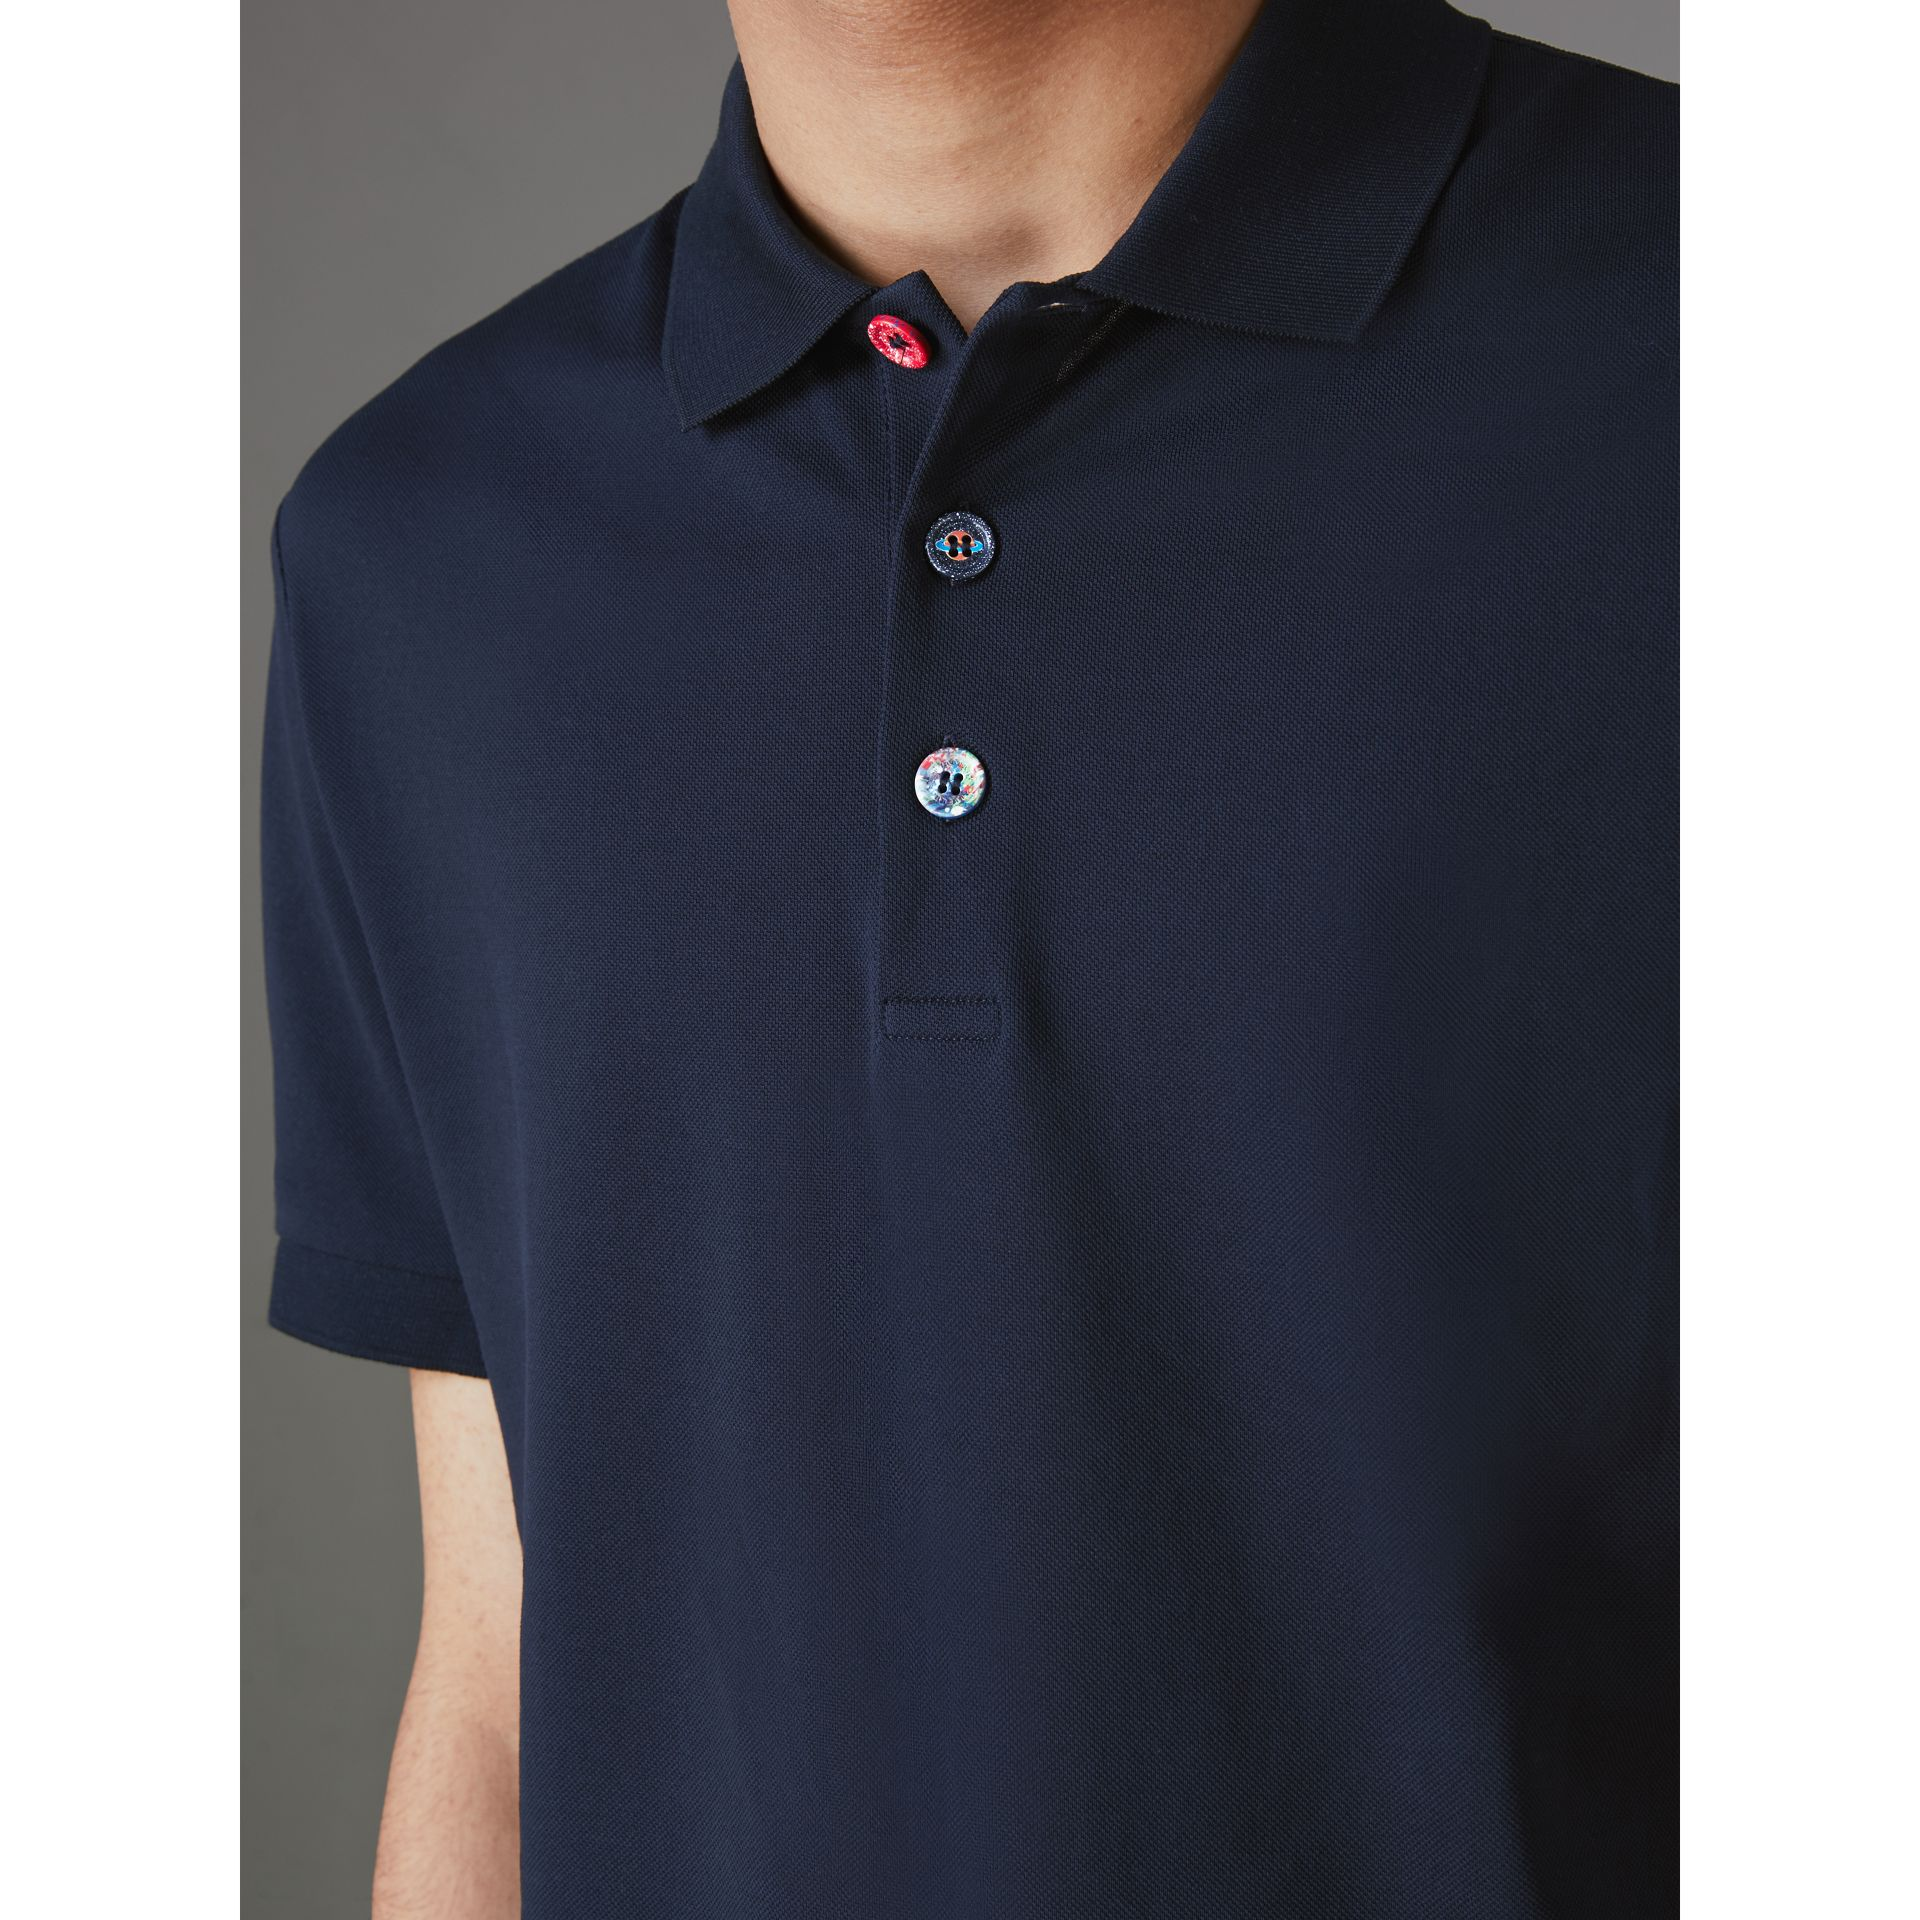 Painted Button Cotton Piqué Polo Shirt in Navy - Men | Burberry United Kingdom - gallery image 1